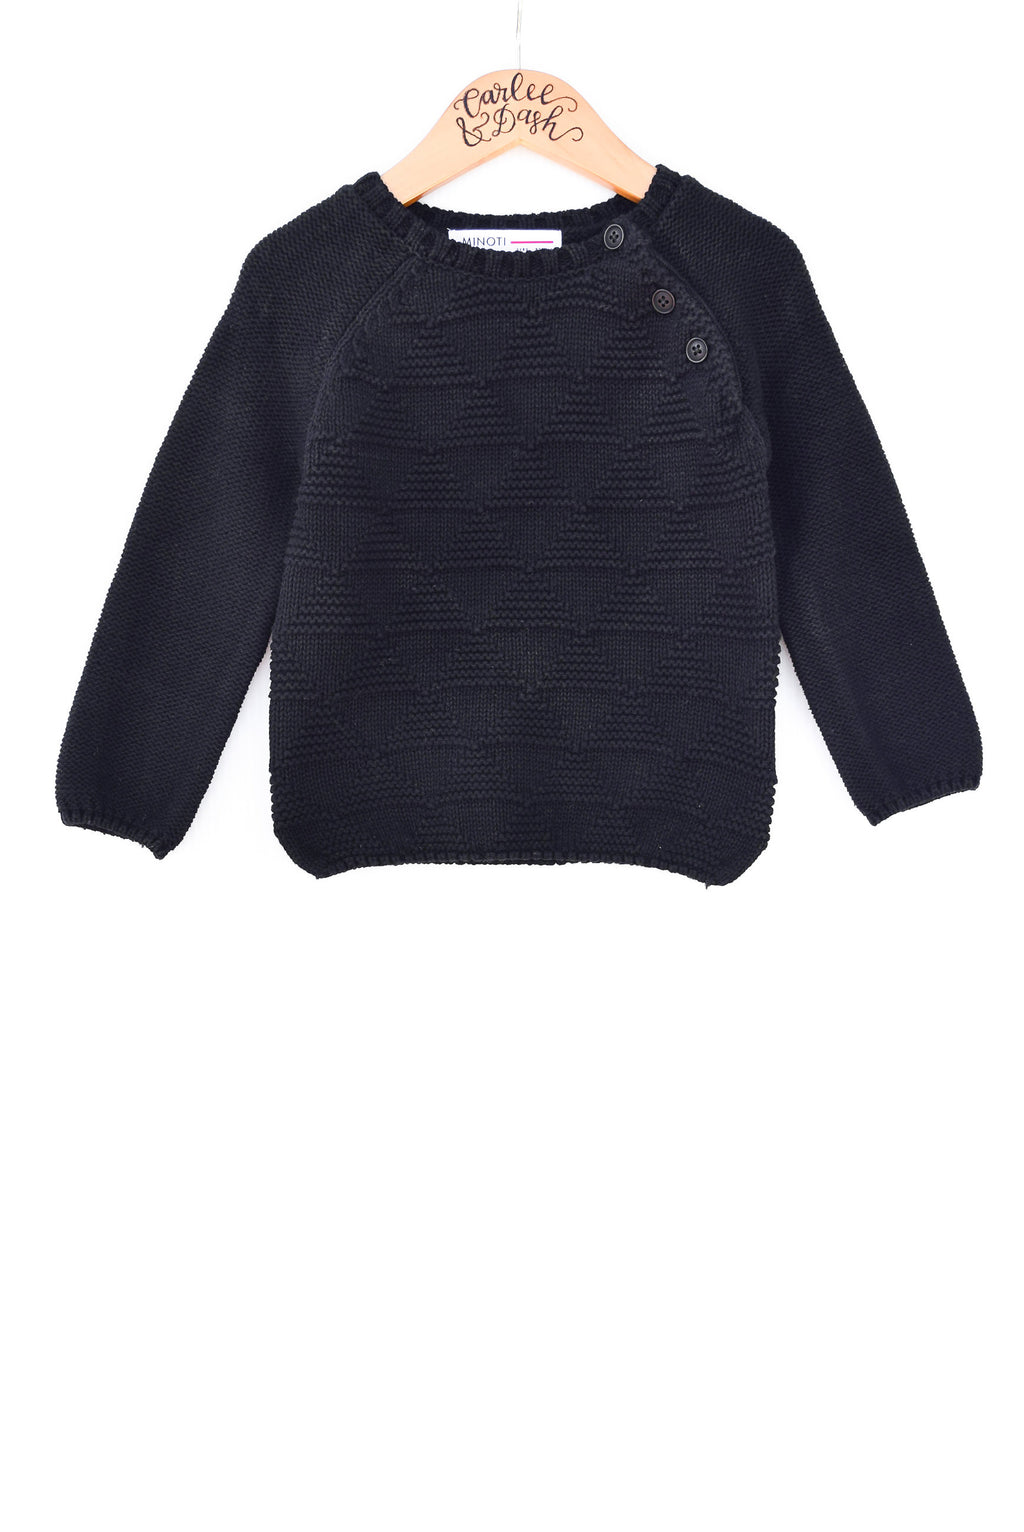 Black Knit Sweater with Buttons